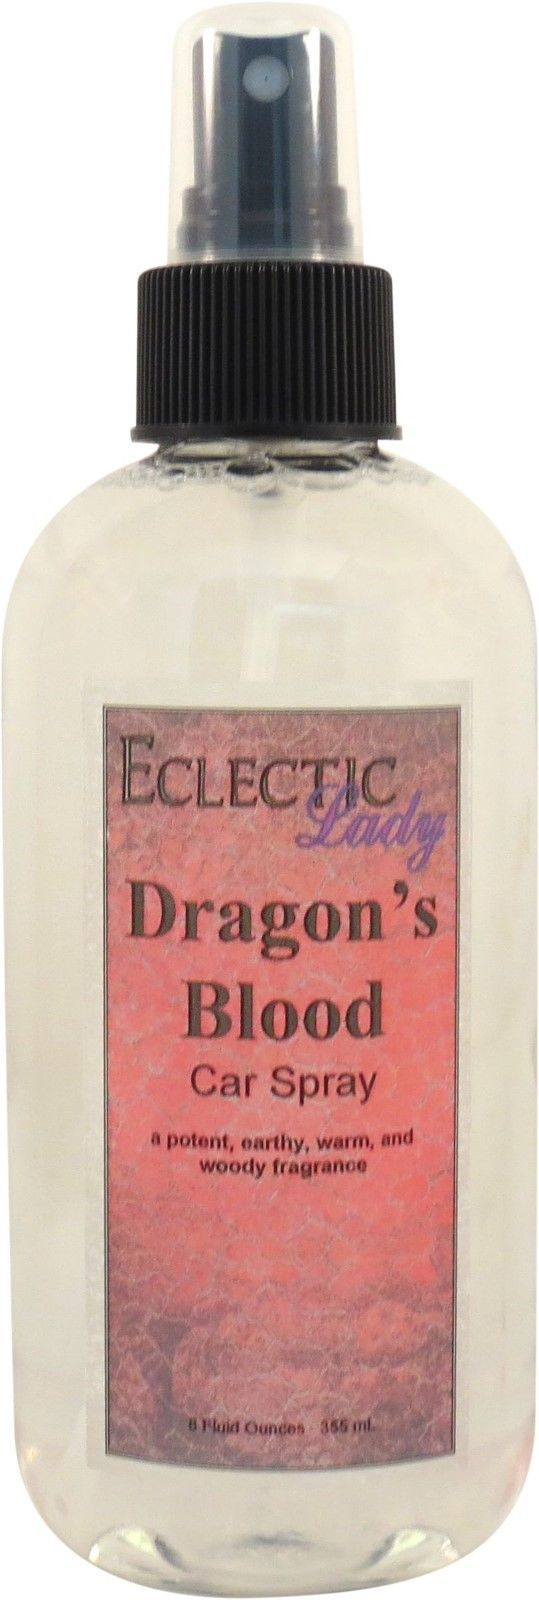 Dragon's Blood Car Spray